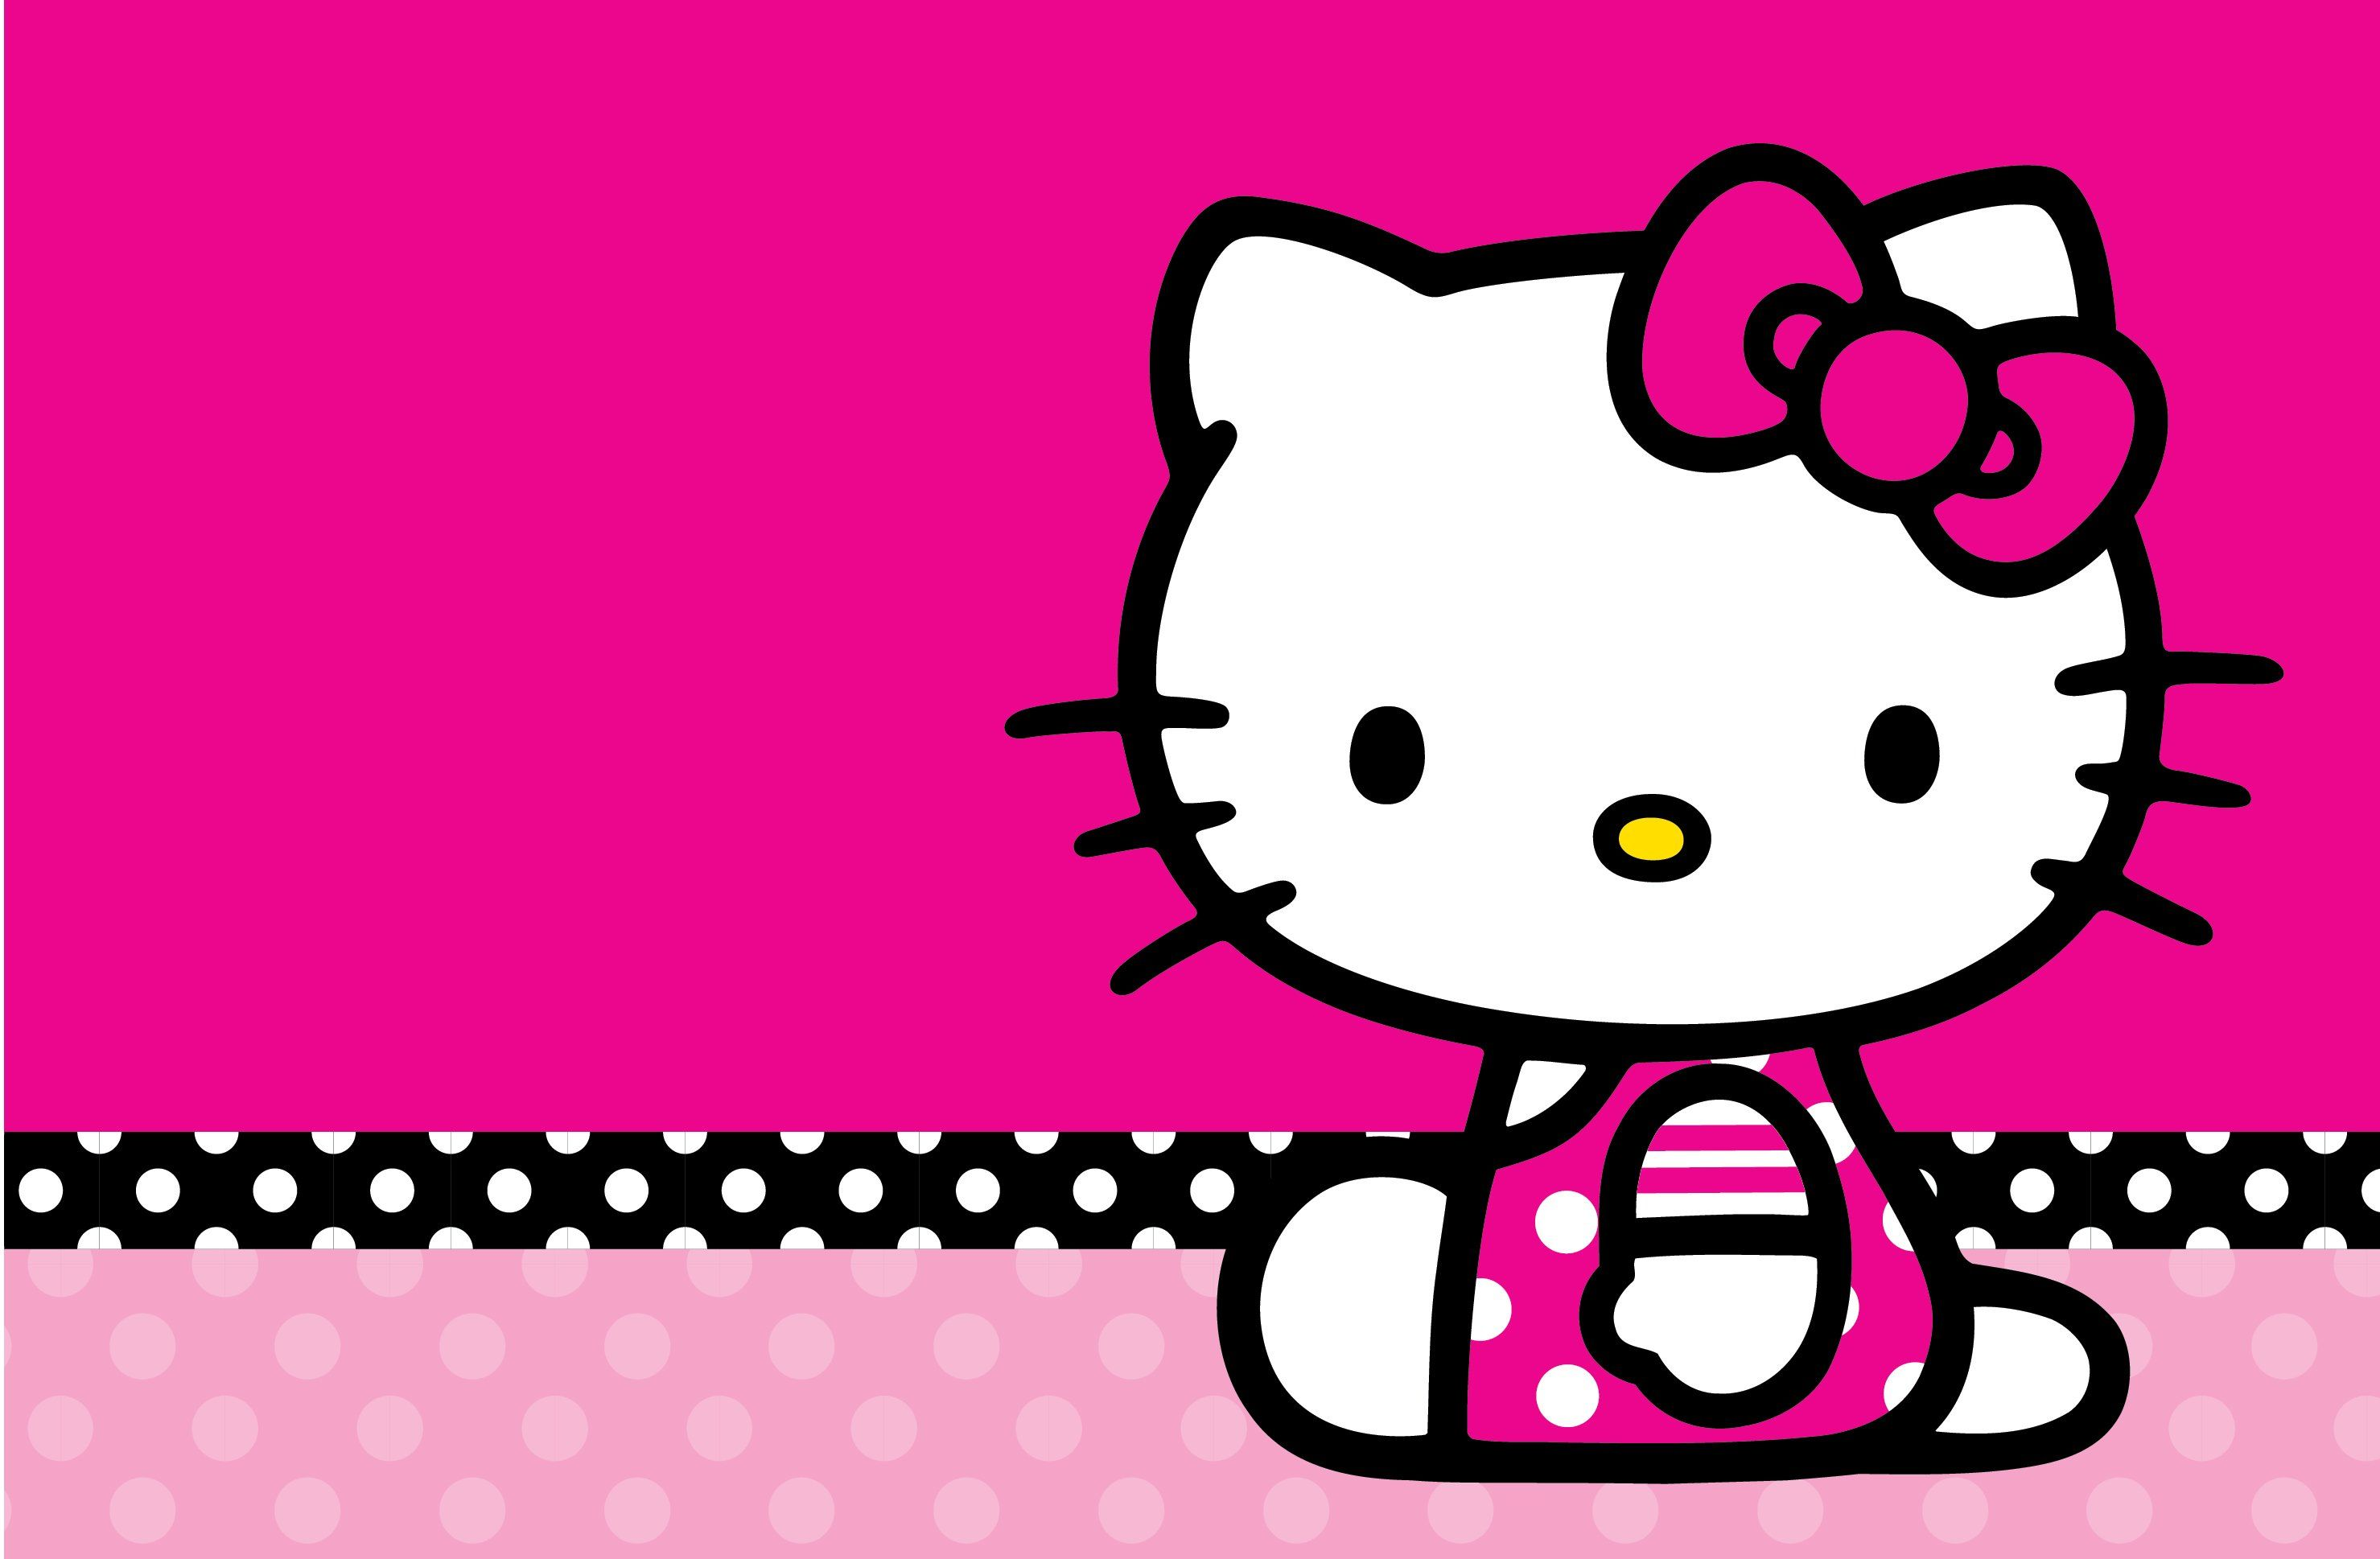 Who android wallpaper pictures of snow free hello kitty wallpaper - Love Pink Pink Black Wallpaperfreebie Even My Phone Wants To Hd Wallpapers Pinterest Hello Kitty Wallpaper Kitty Wallpaper And Wallpaper